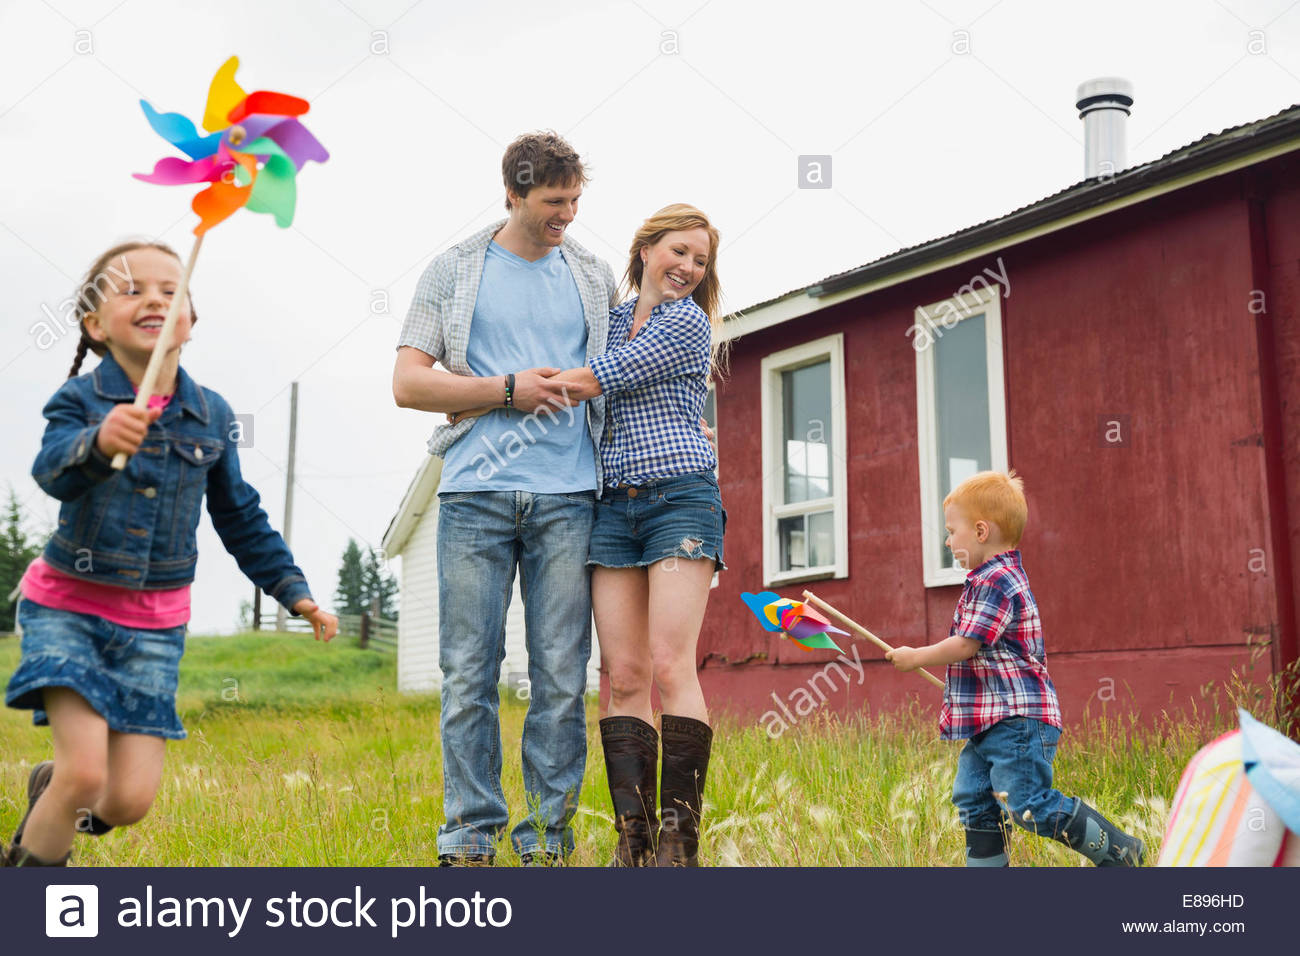 Parents watching children play with pinwheels Stock Photo